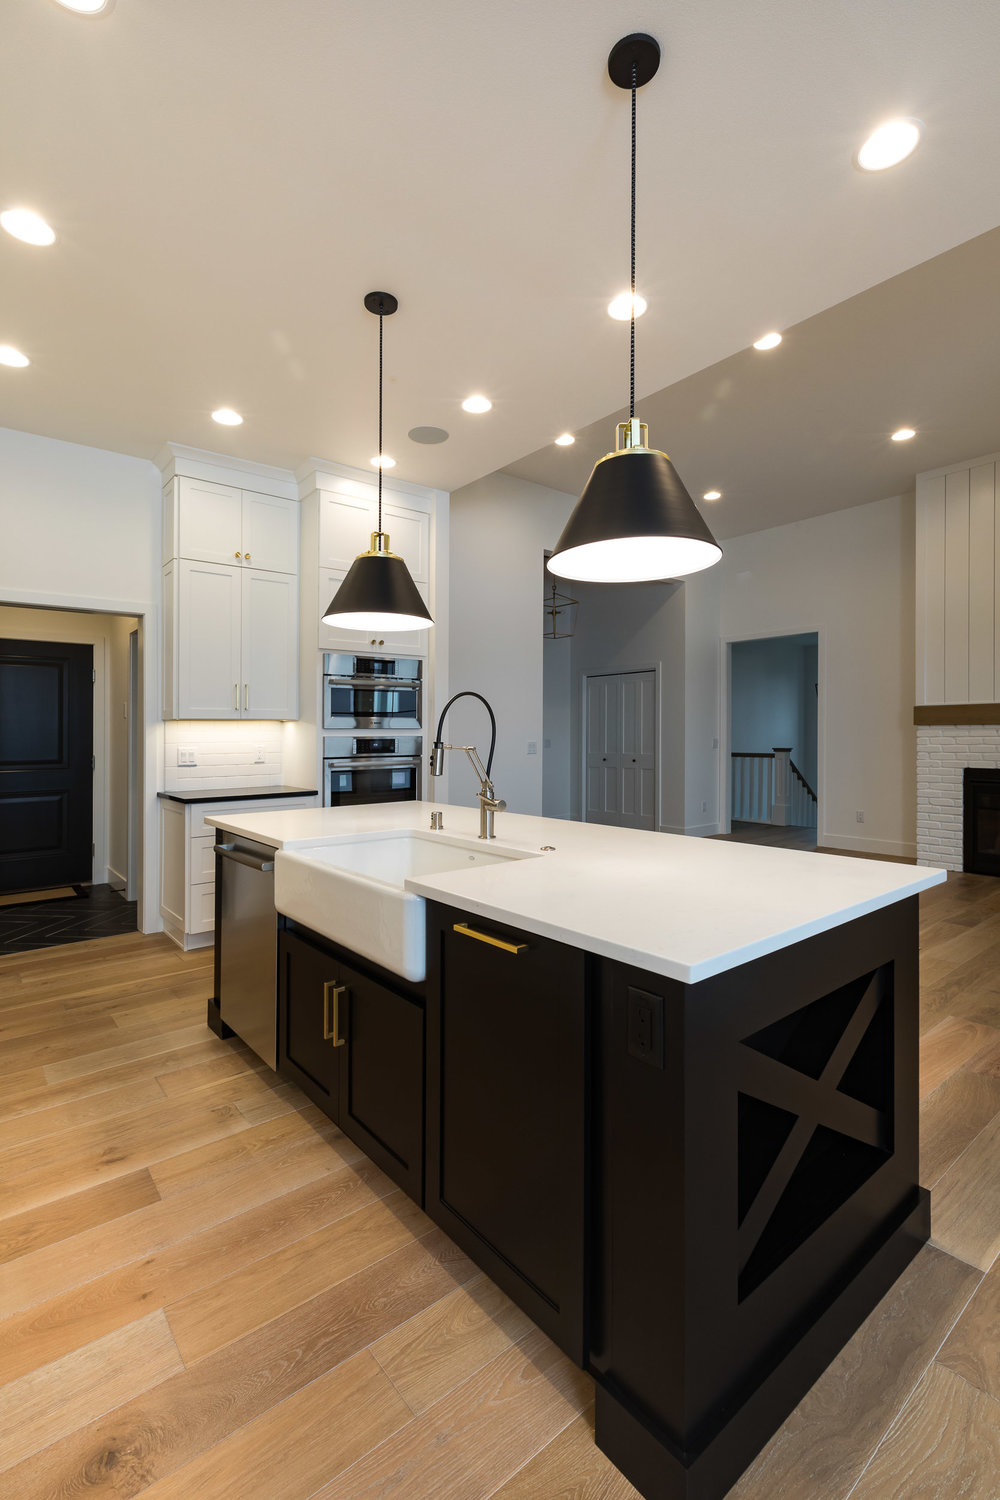 beyond-the-box-panted-cabinets-3.jpg